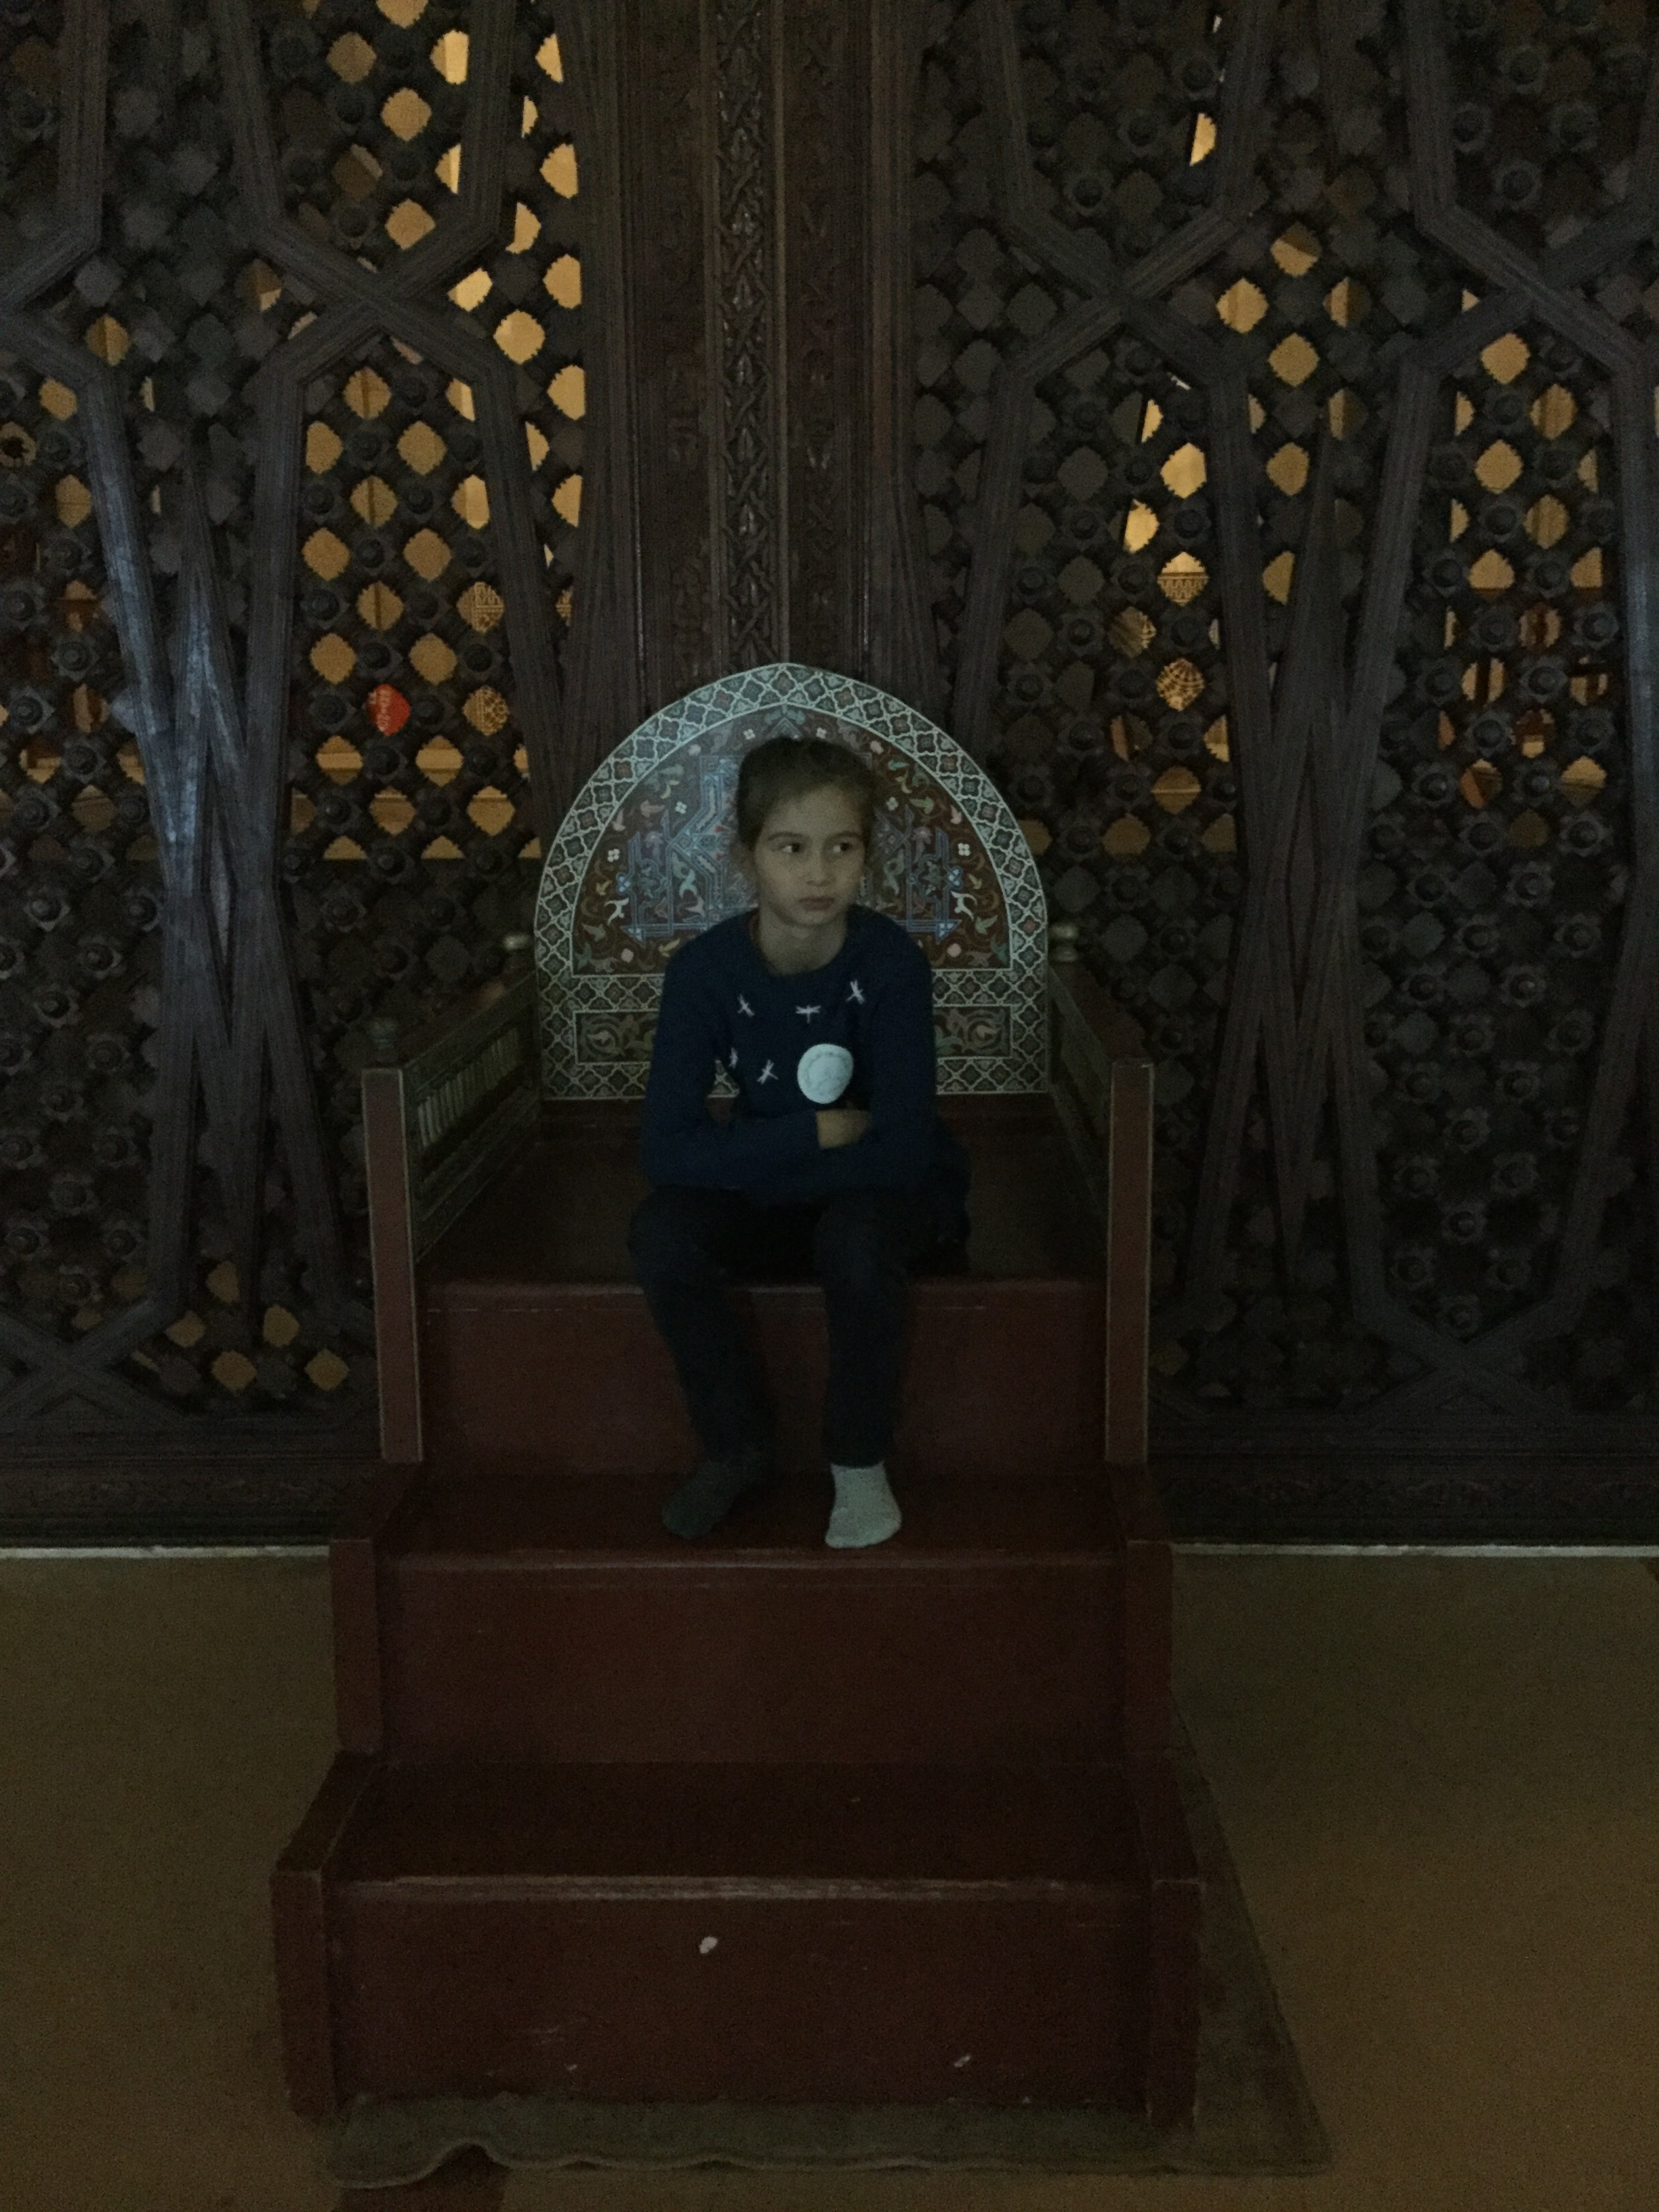 Lili also got to sit on the chair of the catechism instructor. Note the odd socks and the look of deep reflection ...